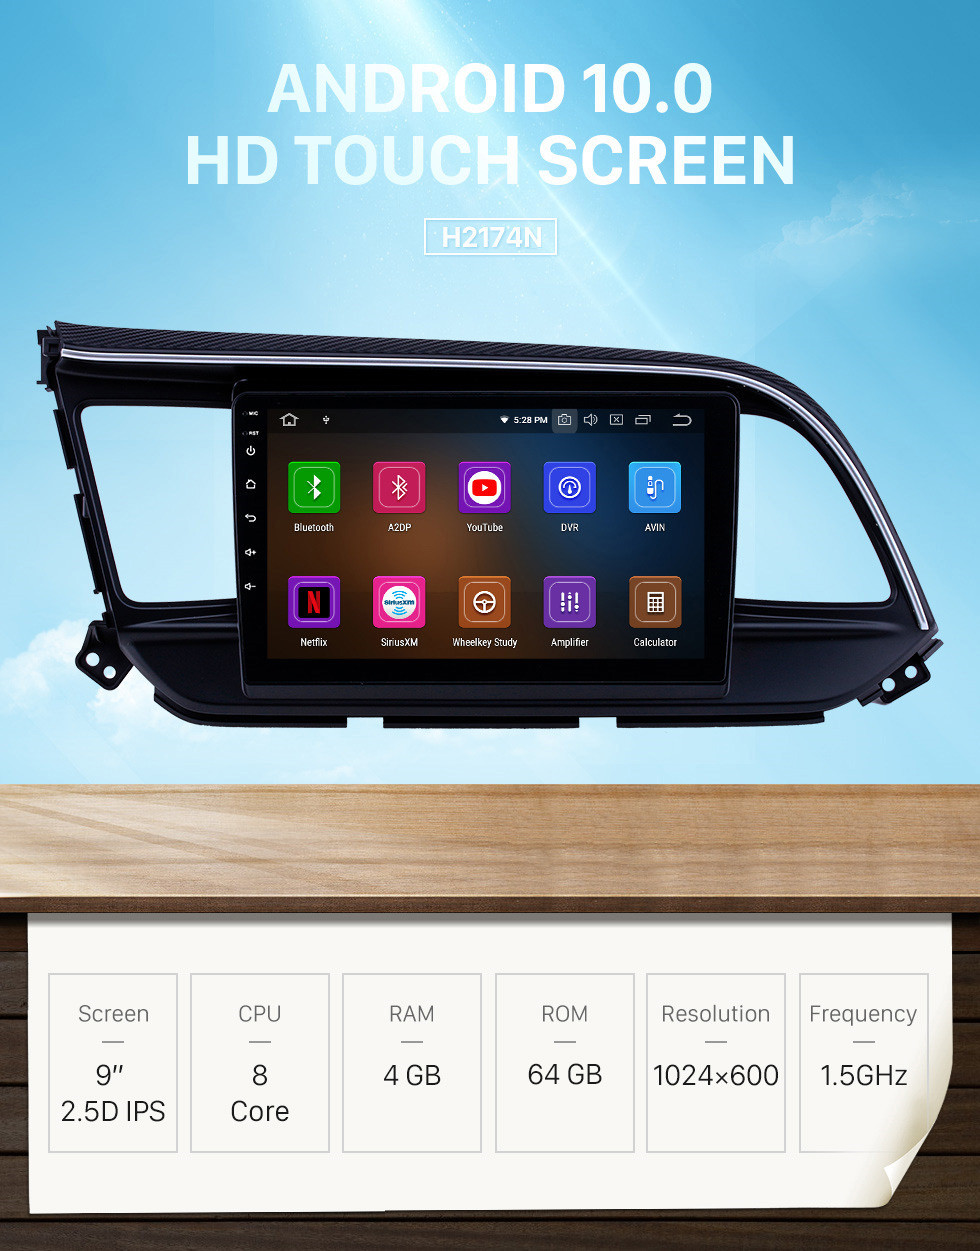 Seicane Android 10.0 9 inch GPS Navigation Radio for 2016 Hyundai Elantra LHD Head Unit Stereo with Carplay Bluetooth WIFI USB AUX support DVR Steering wheel control